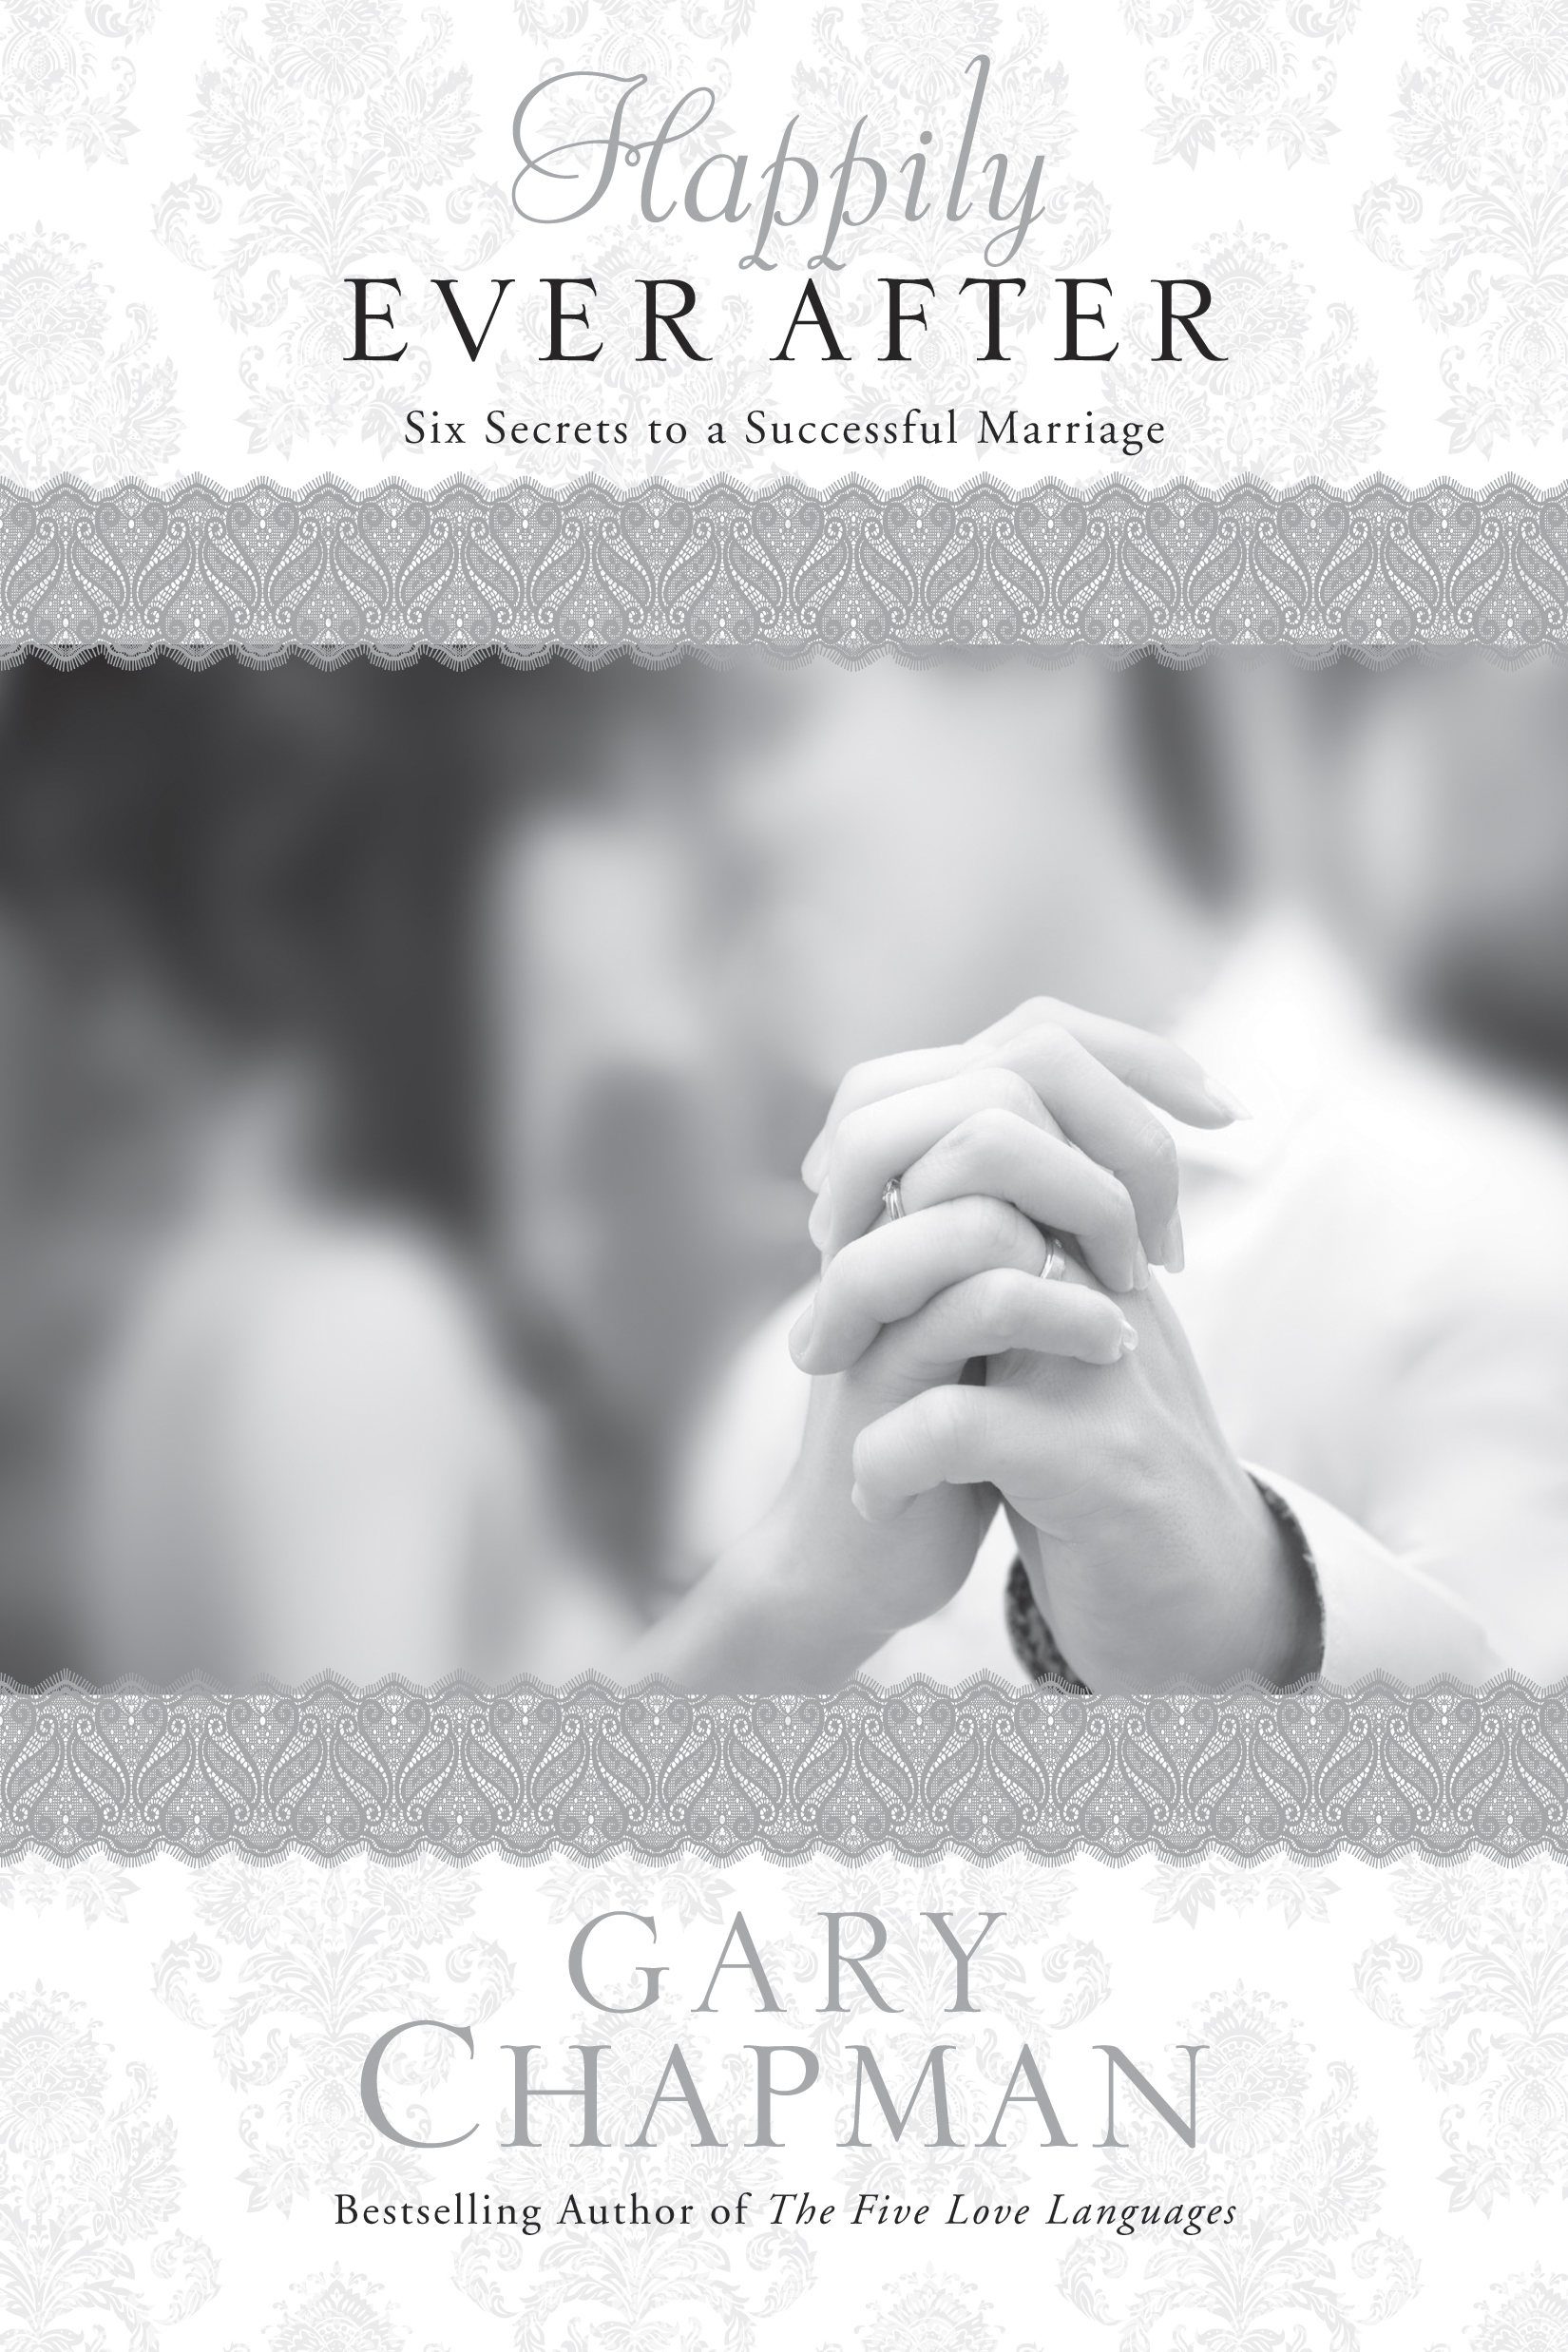 What does it take to have a successful marriage